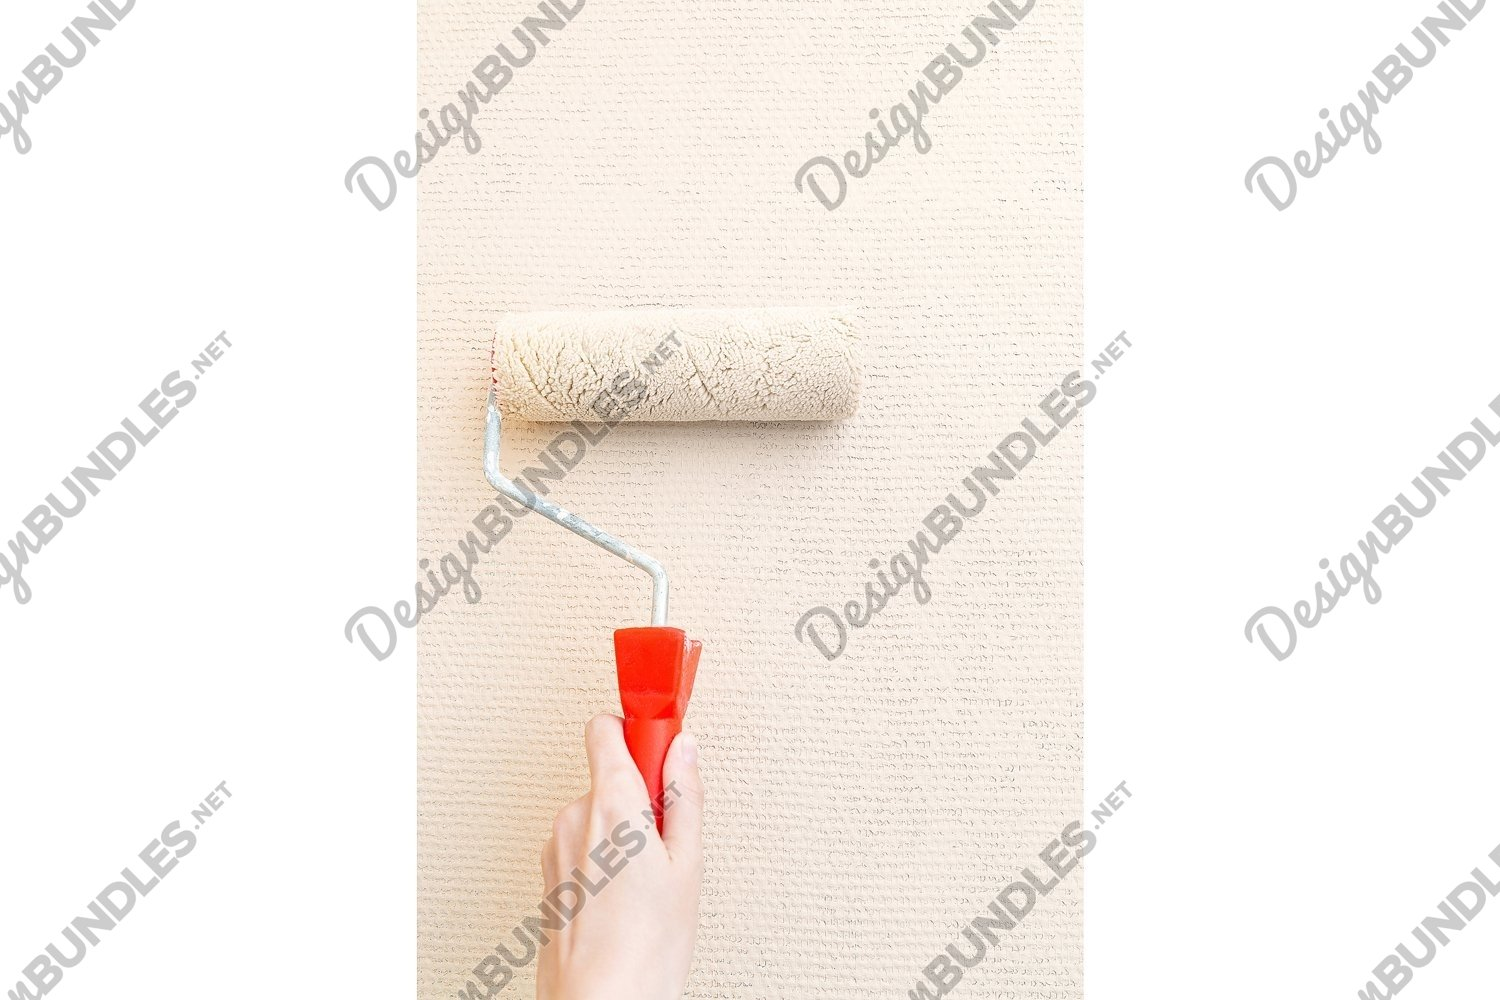 Photo of a hand with a cushion paints the wall example image 1